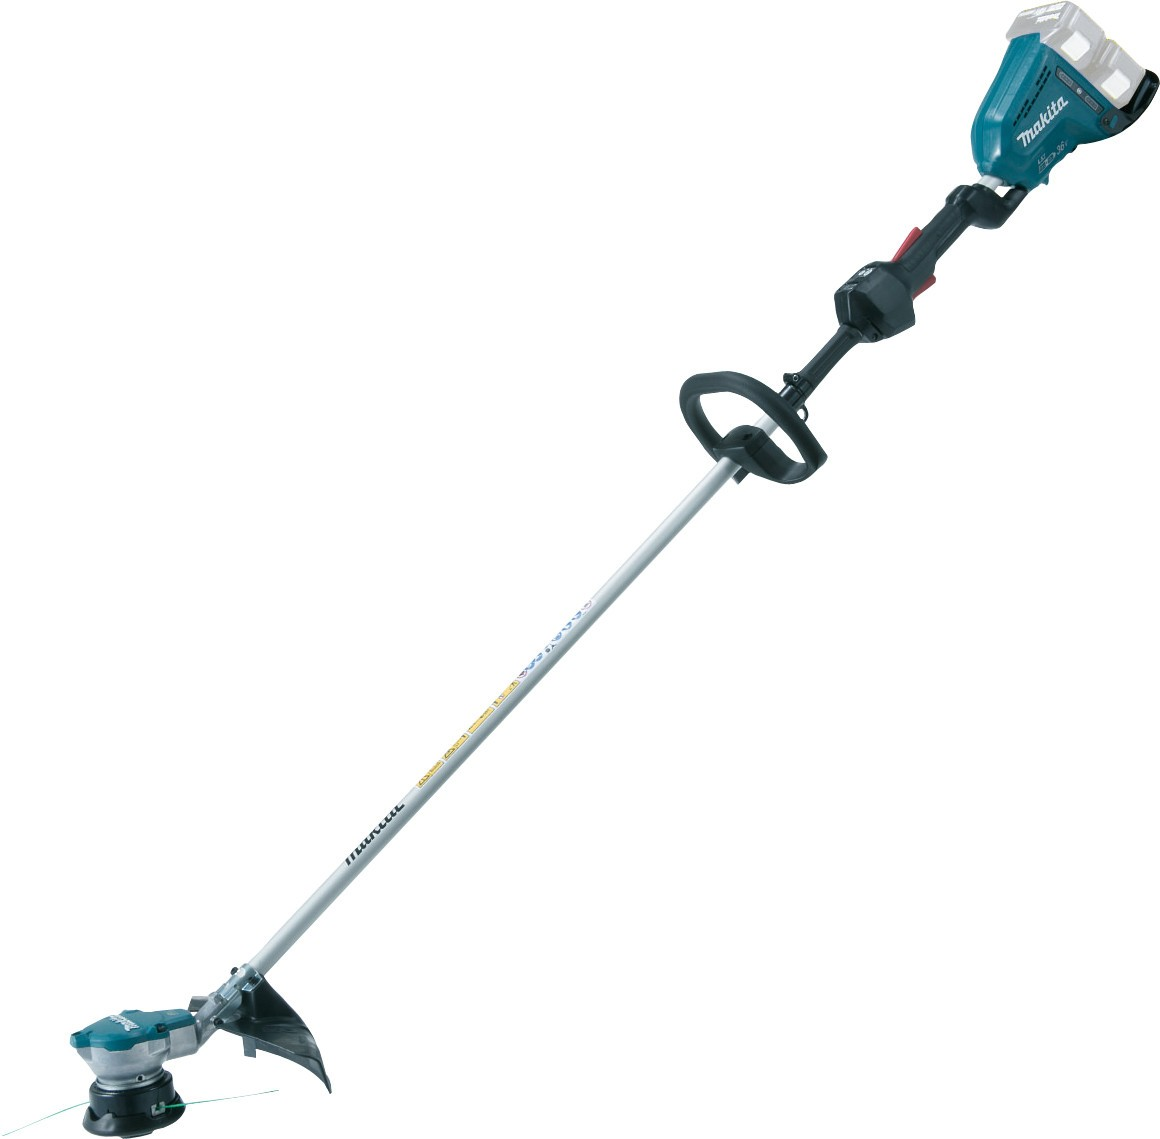 Makita DUR364LZ Twin 18v LXT Brushless Cordless Line Trimmer Body Only